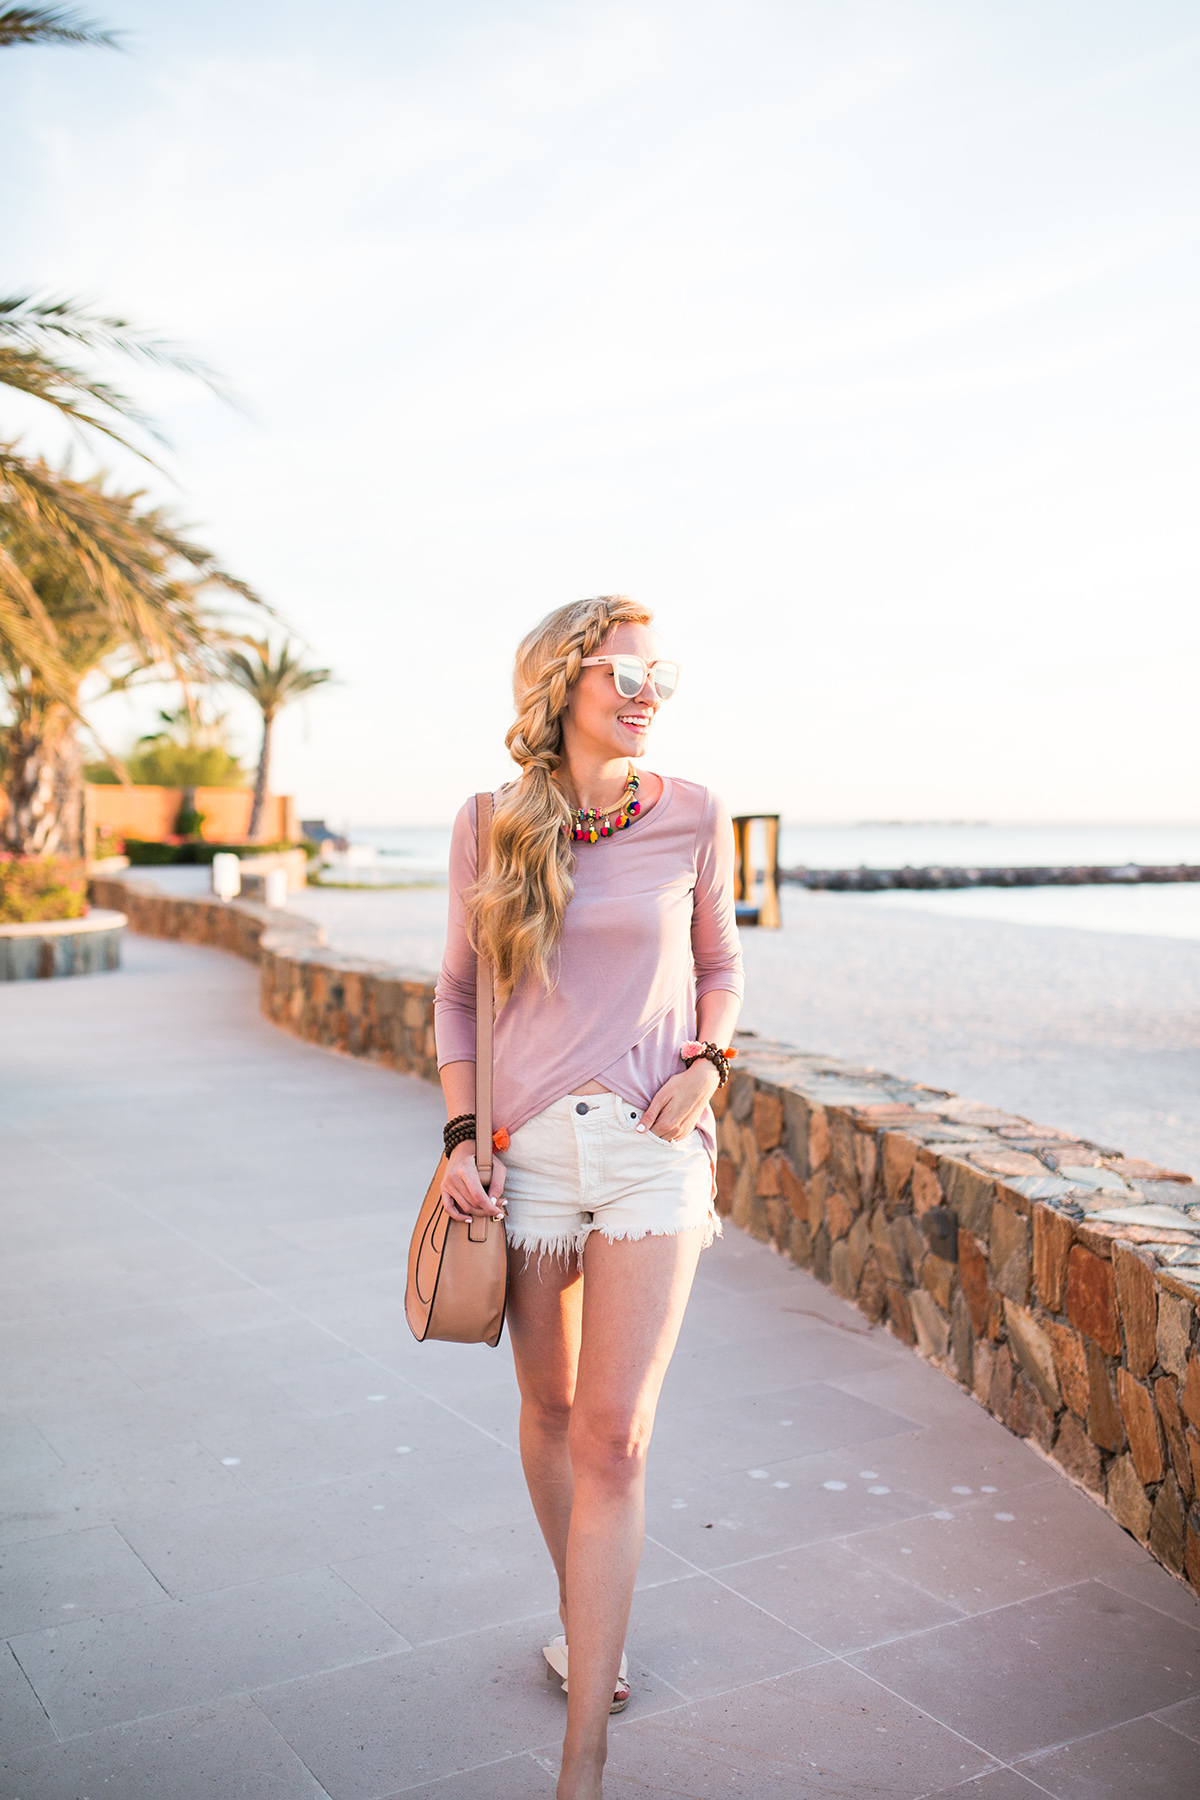 denim cutoff shorts | spring outfit ideas | Lord & Taylor Sale